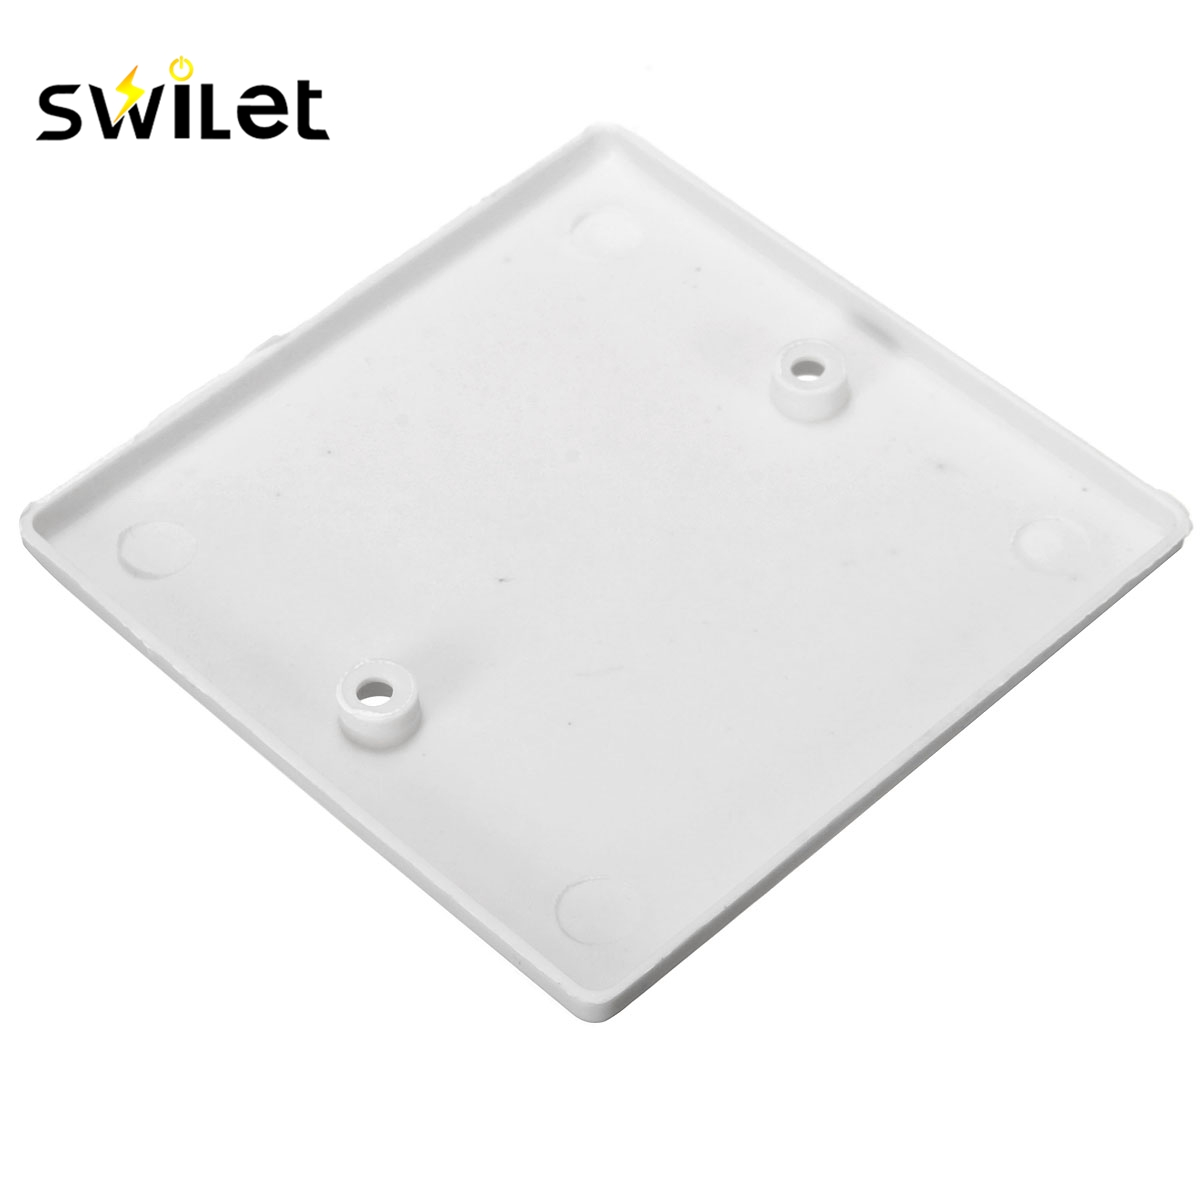 SWILET White Plug Electric Mains Spare Wall Switch Socket Single Blanking Plate Cover Electrical Socket Accessories ...